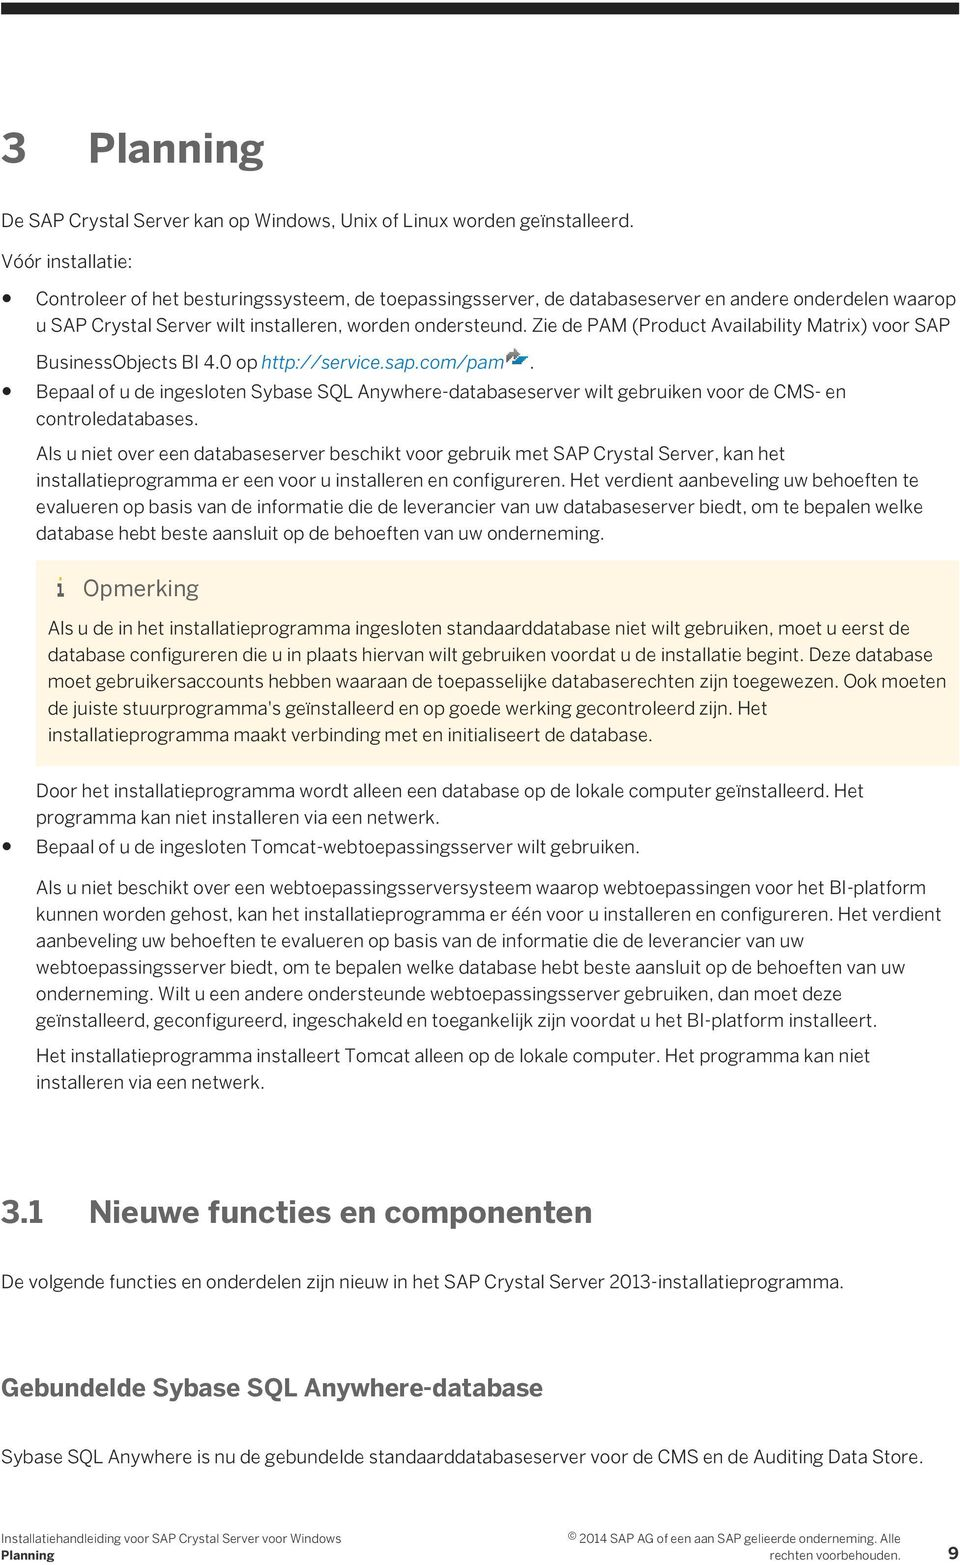 Zie de PAM (Product Availability Matrix) voor SAP BusinessObjects BI 4.0 op http://service.sap.com/pam.